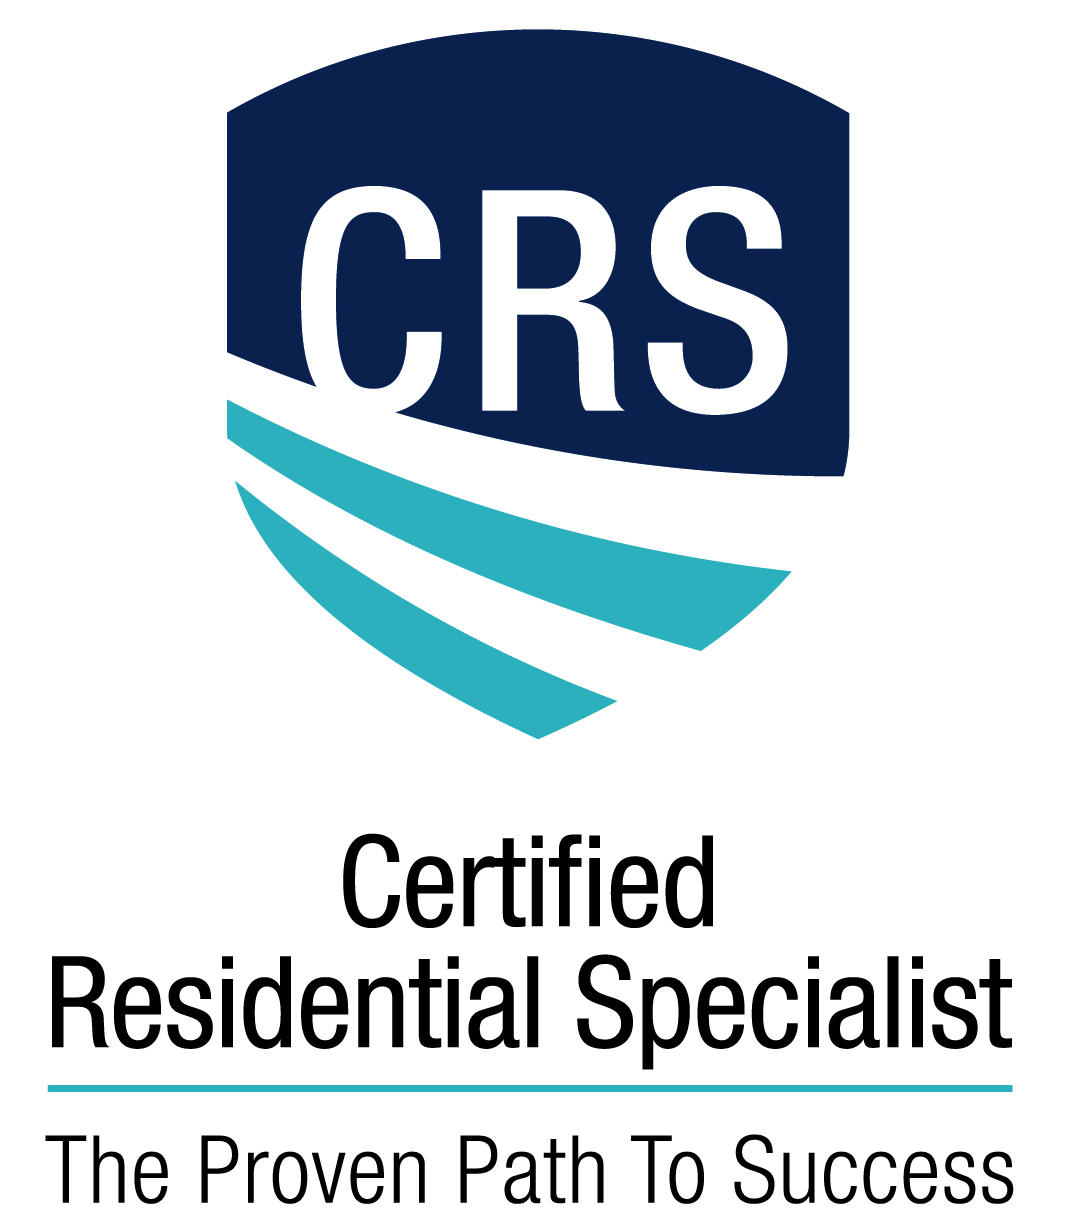 CRS - Certified Residential Specialist